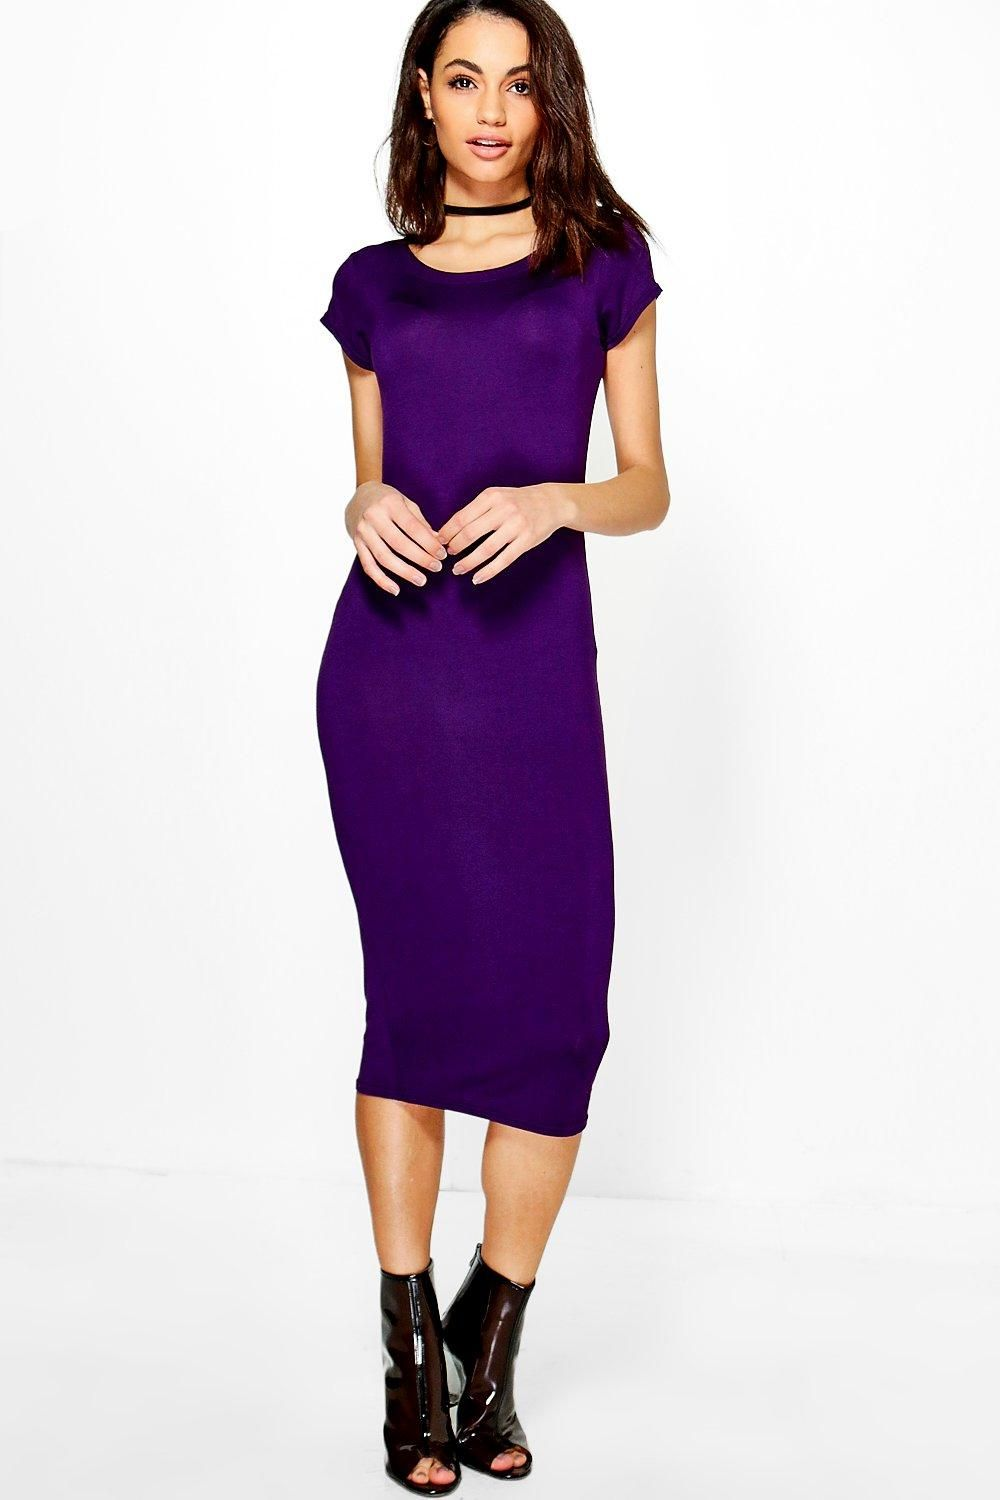 Cara cap sleeve jersey bodycon midi dress seasons dress up and